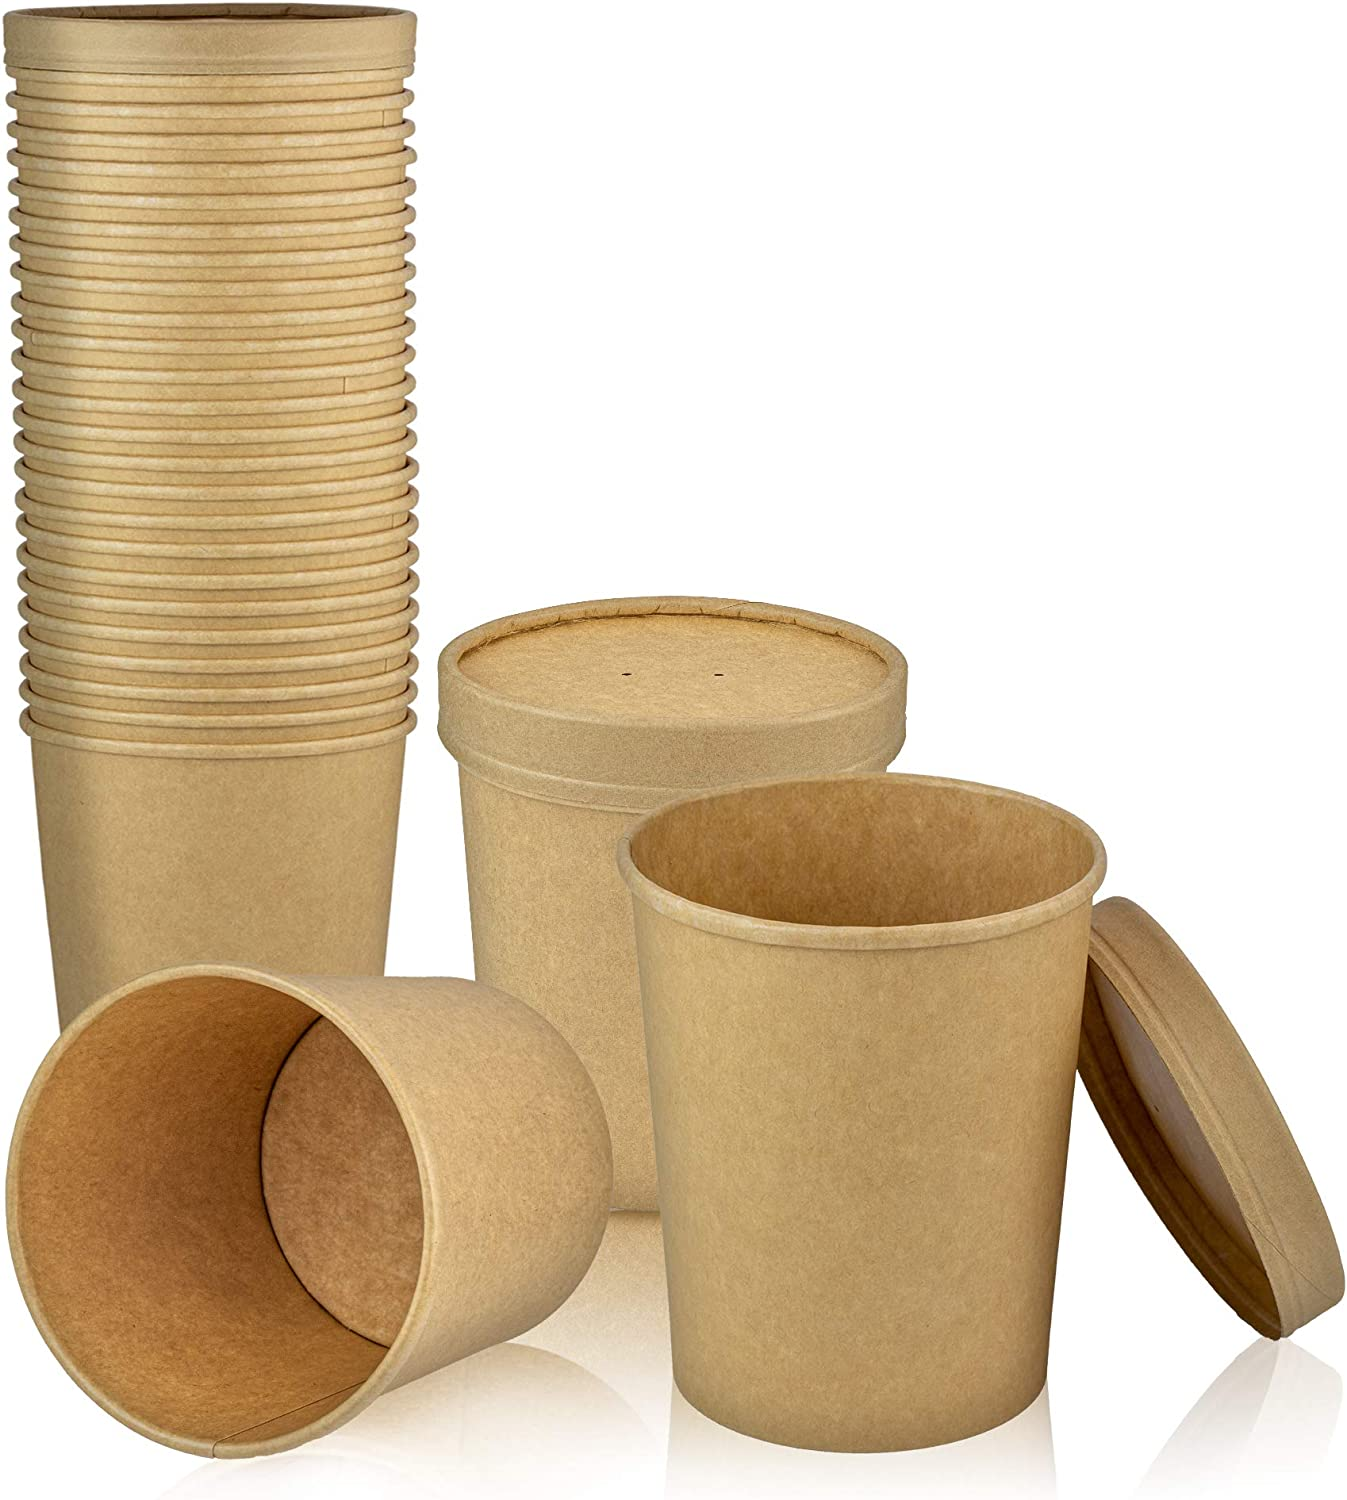 [25 Pack] 32 oz Kraft Compostable Paper Food Cup with Vented Lid - Brown Rolled Rim Storage Bucket, Hot or Cold Dish To Go Packaging, Ramen Soup Stews Salad Frozen Dessert Yogurt Ice Cream Container